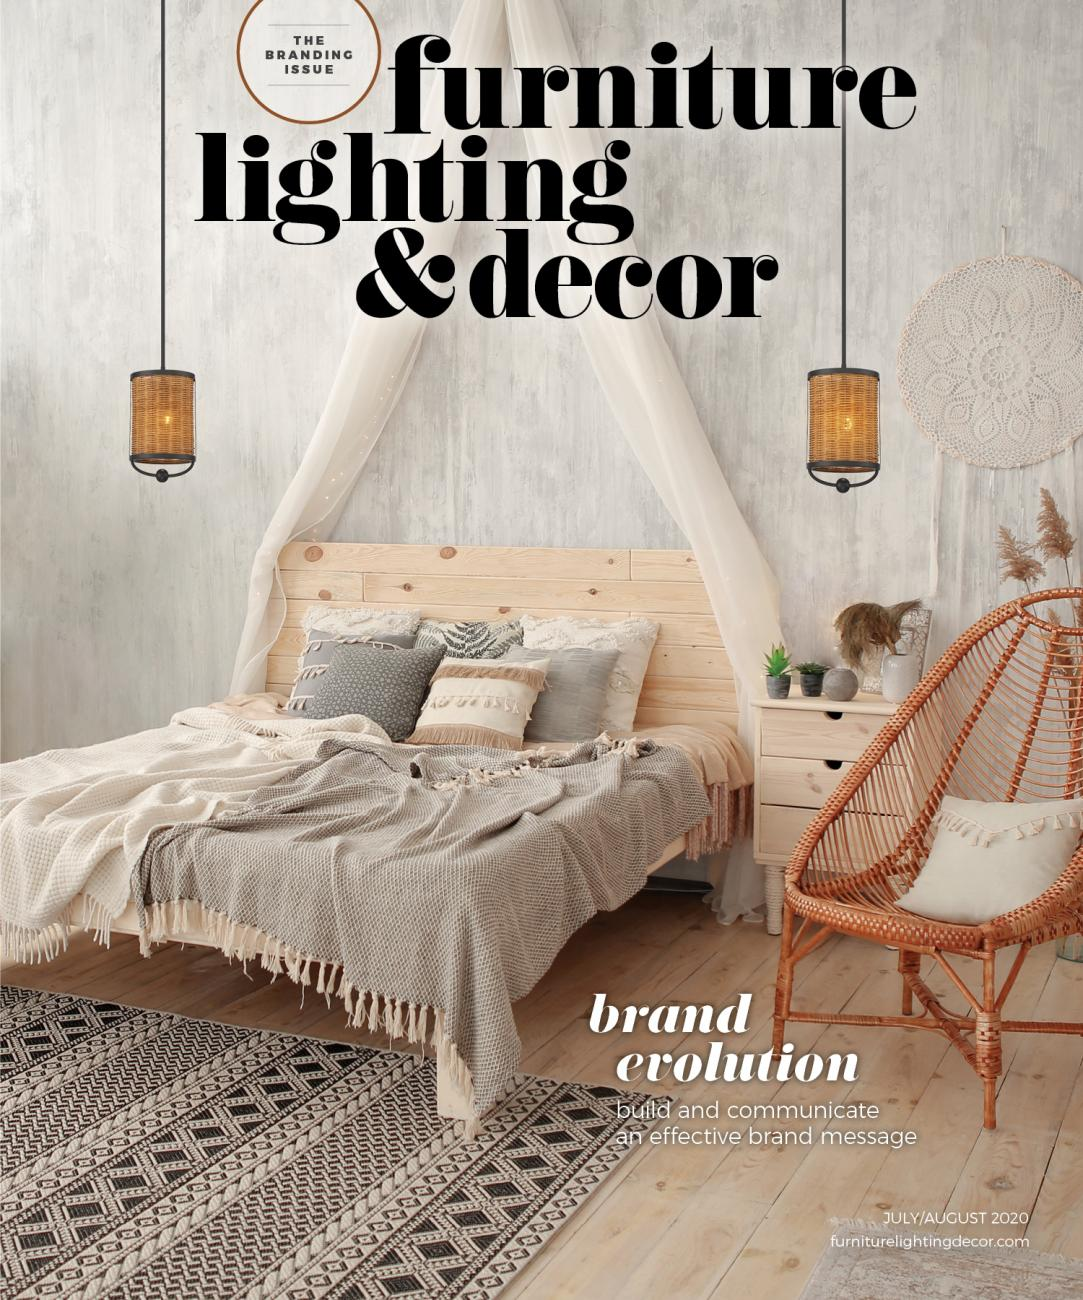 Furniture Lighting & Decor July/August 2020